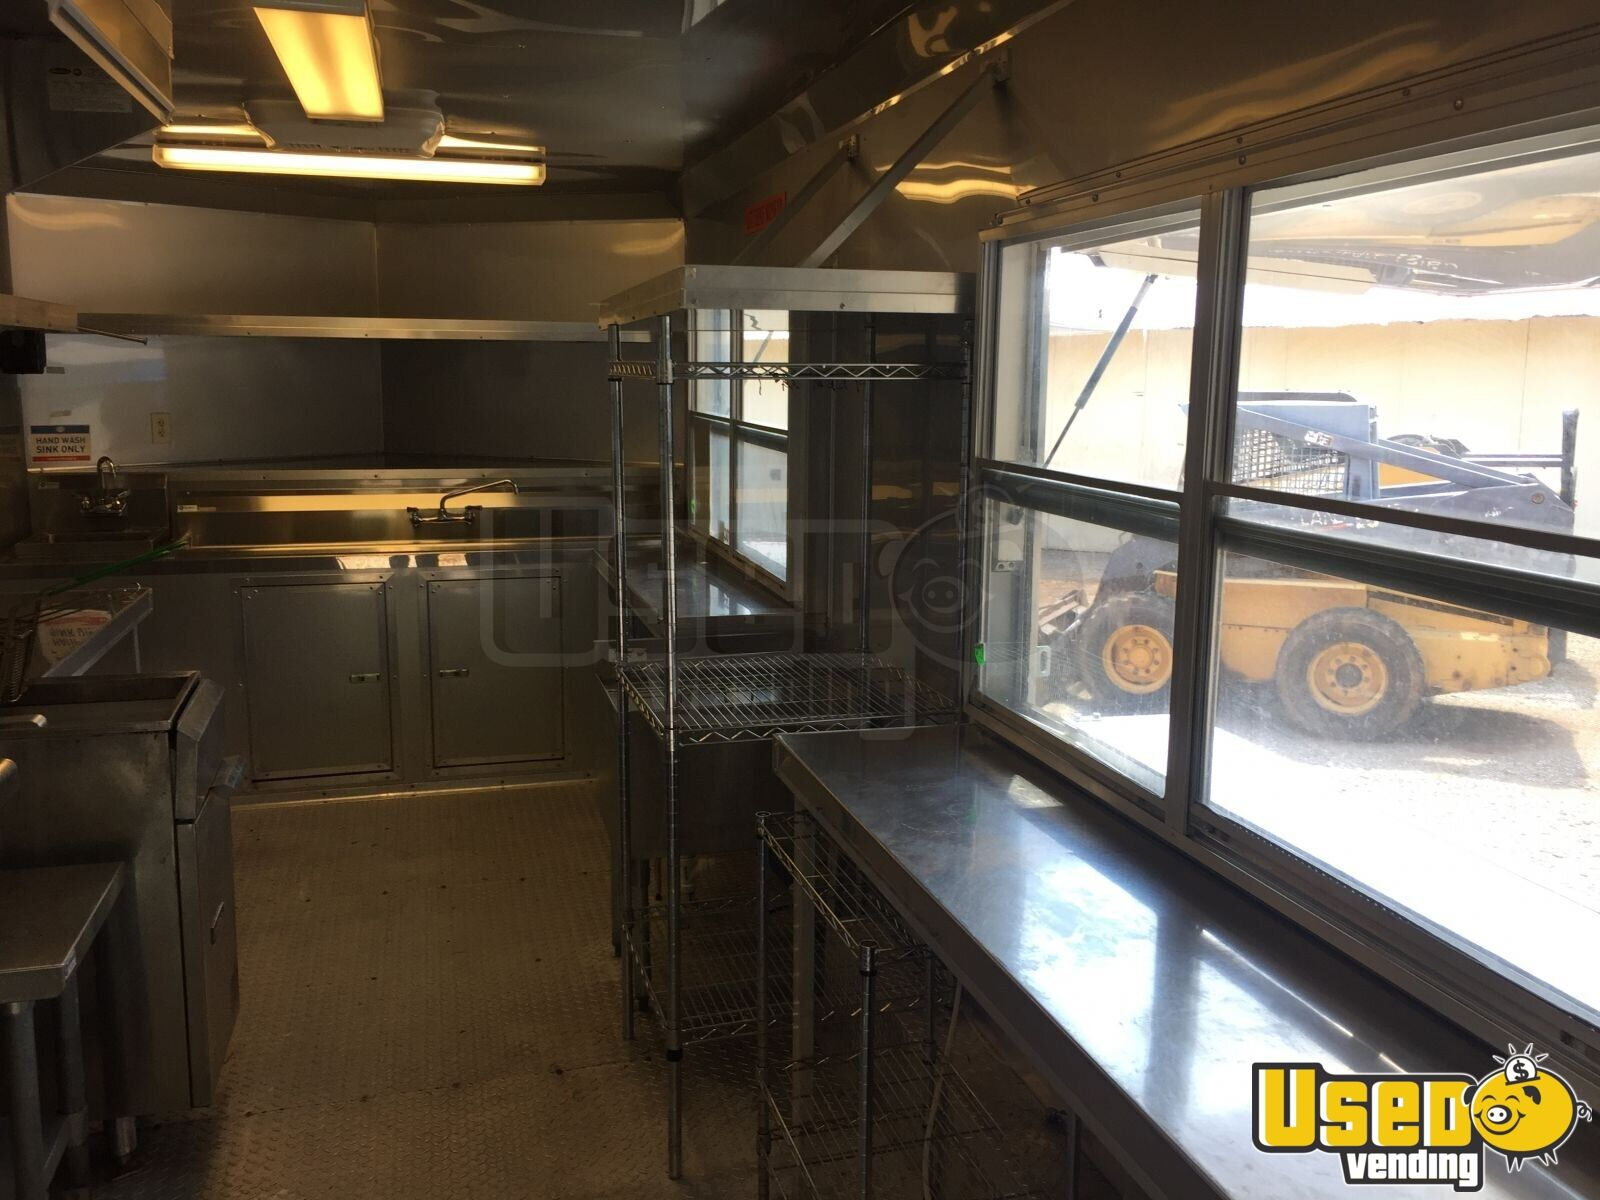 2017 Food Concession Trailer Kitchen Food Trailer Diamond Plated Aluminum Flooring Oklahoma for Sale - 8